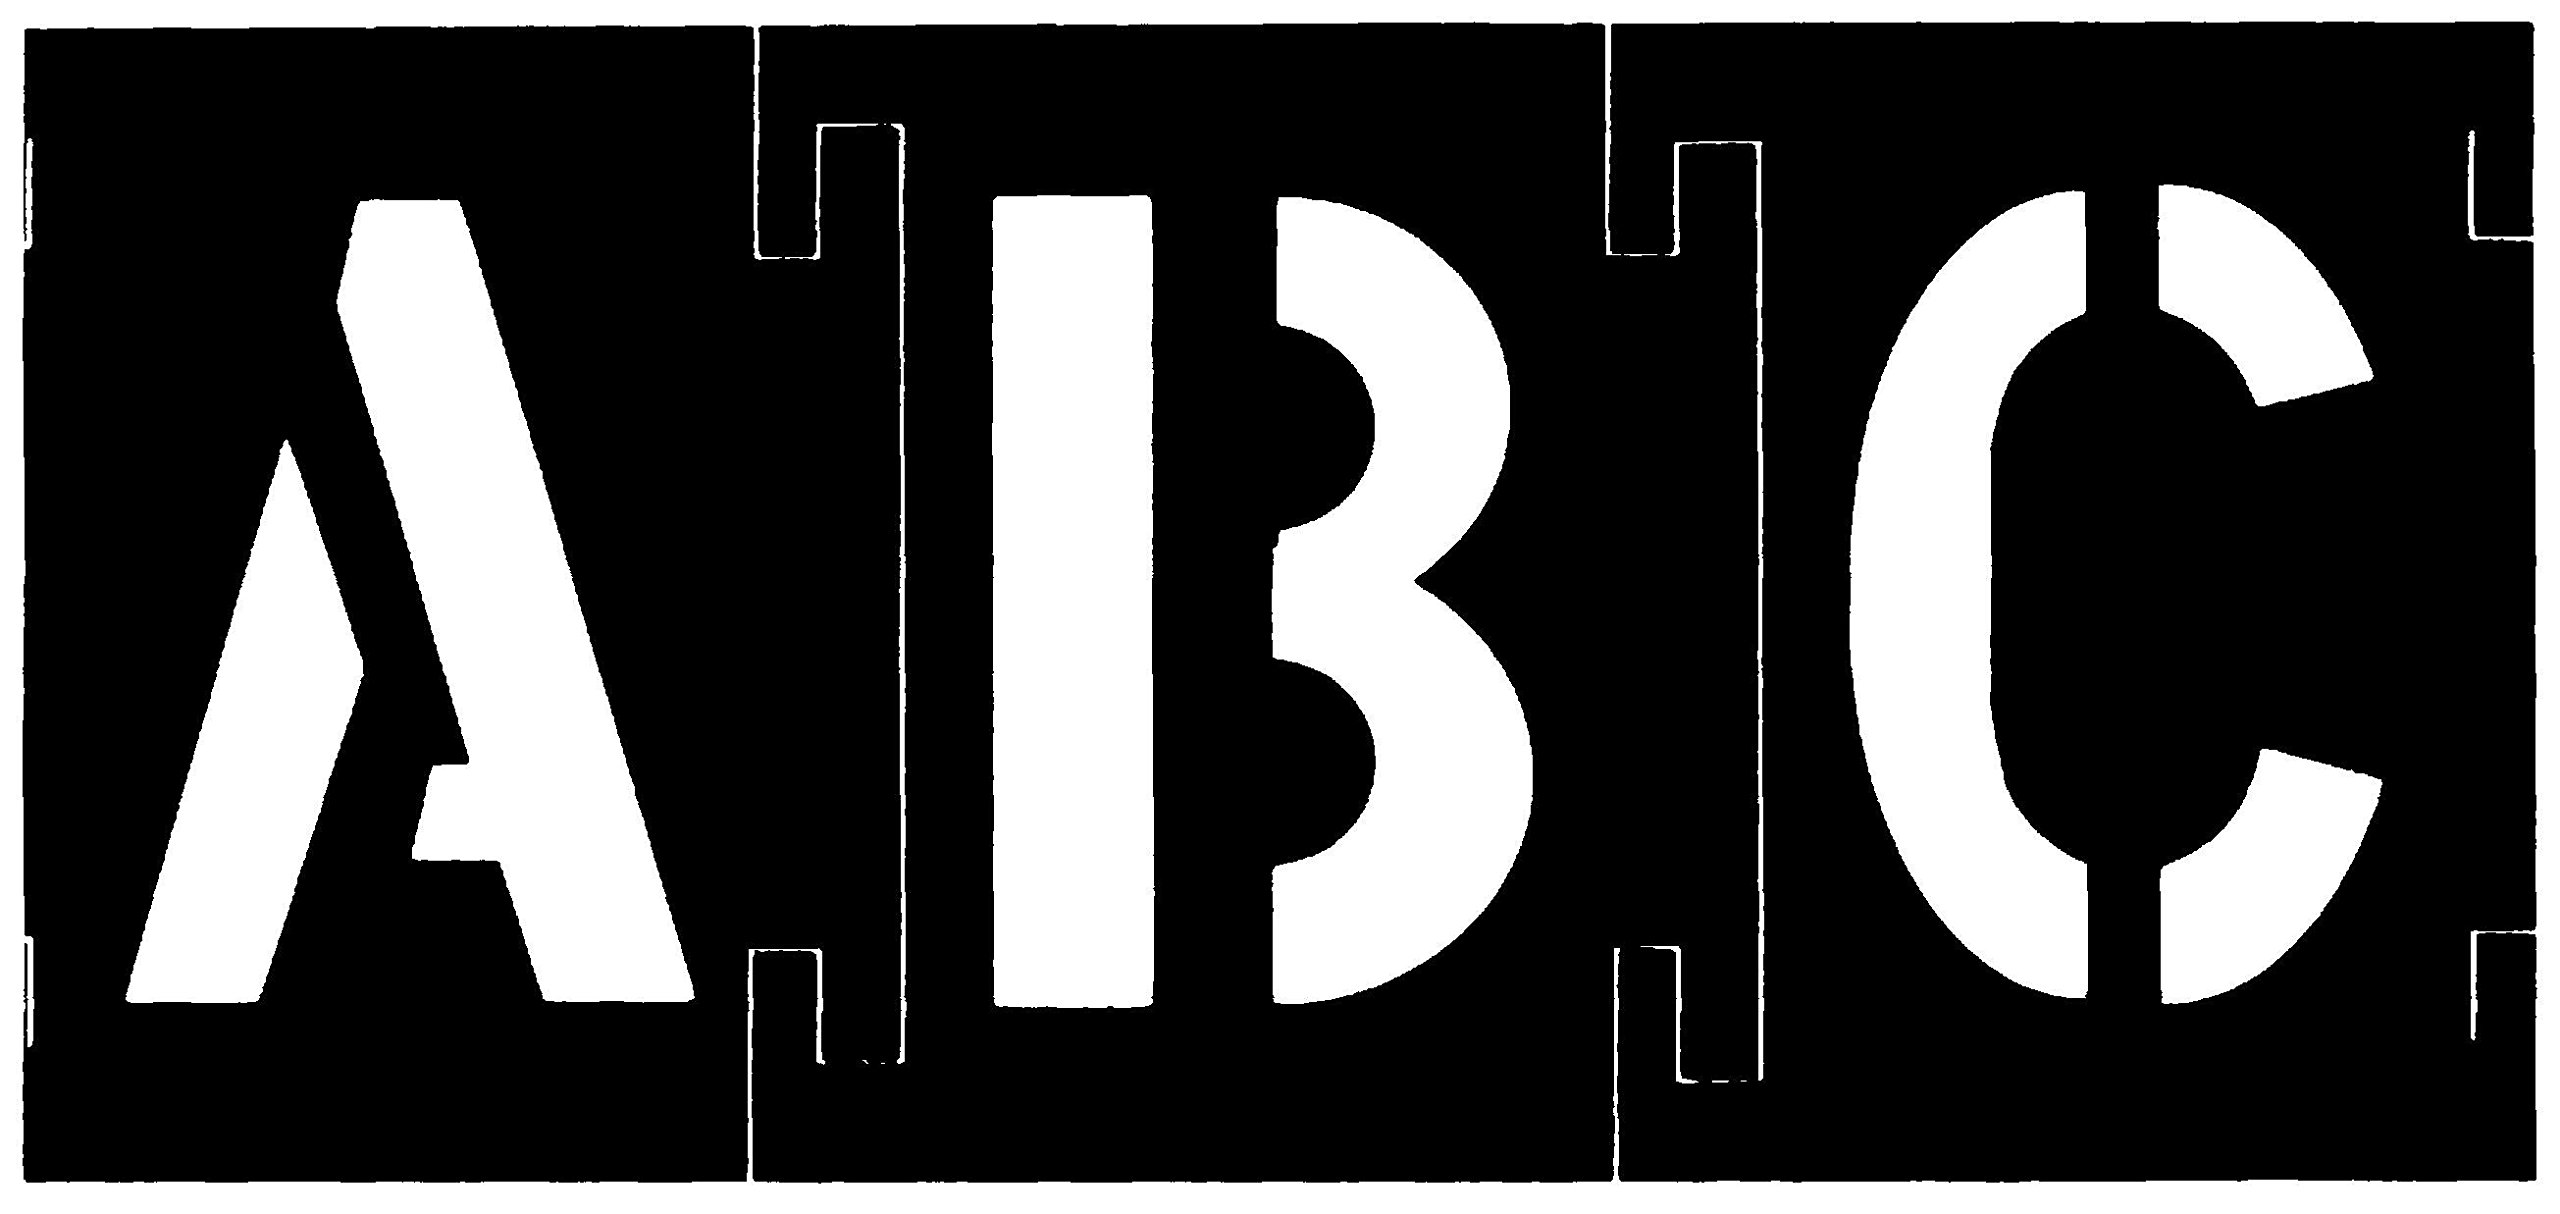 CH Hanson 10195 Plastic Interlocking Stencils Letters and Numbers 138 Piece Set, 3'', Black by CH Hanson